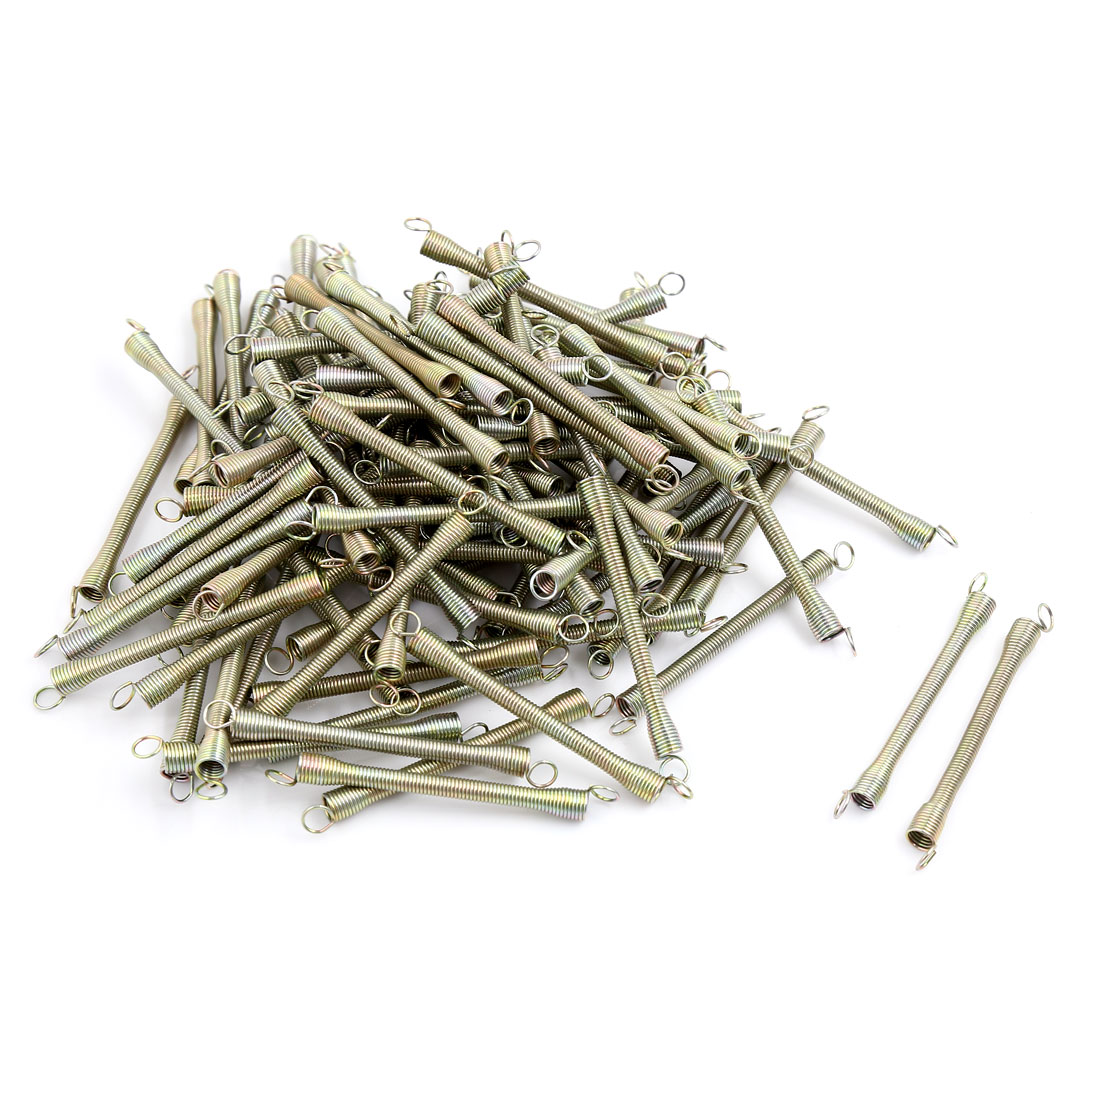 100 Pcs Mud Flaps Fenders Fixed Spring 75mm for Motorcycle